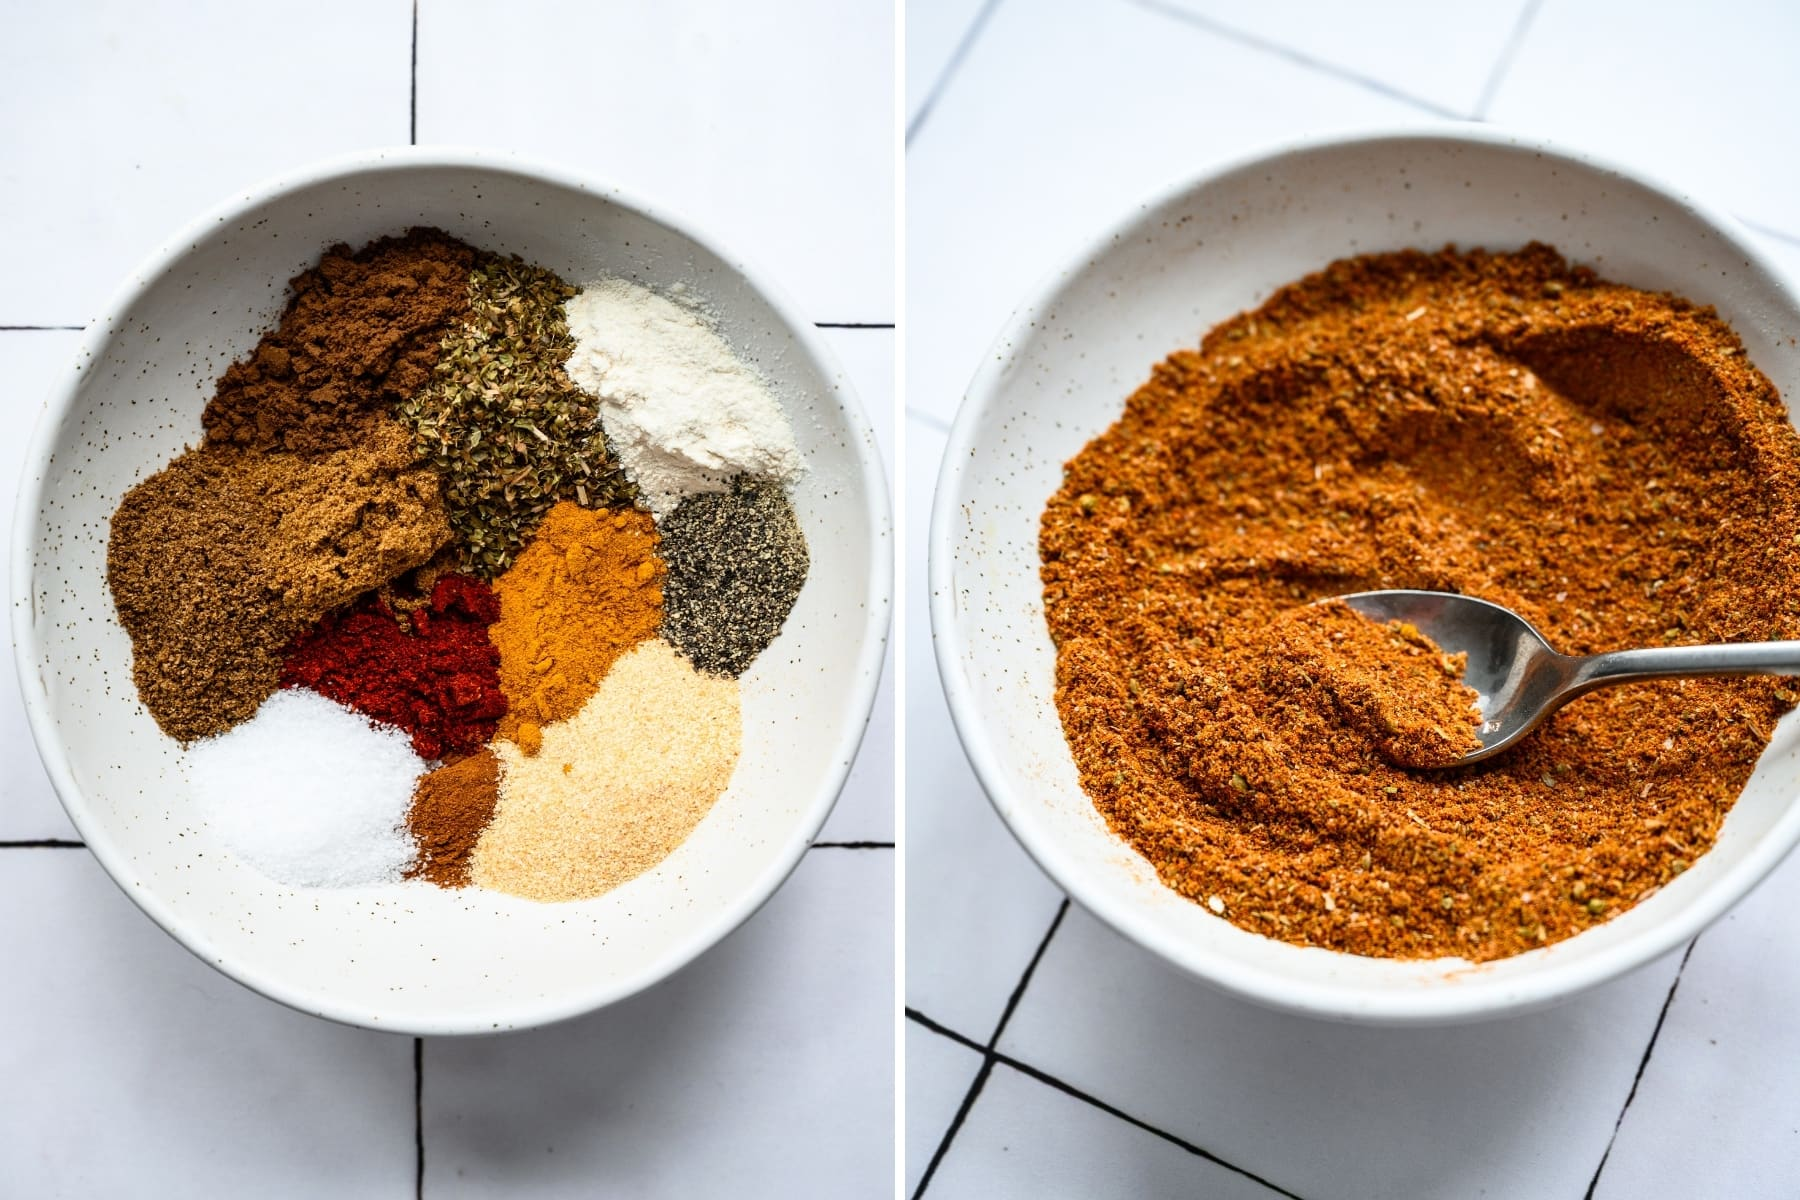 before and after stirring together spices for shawarma spice blend.